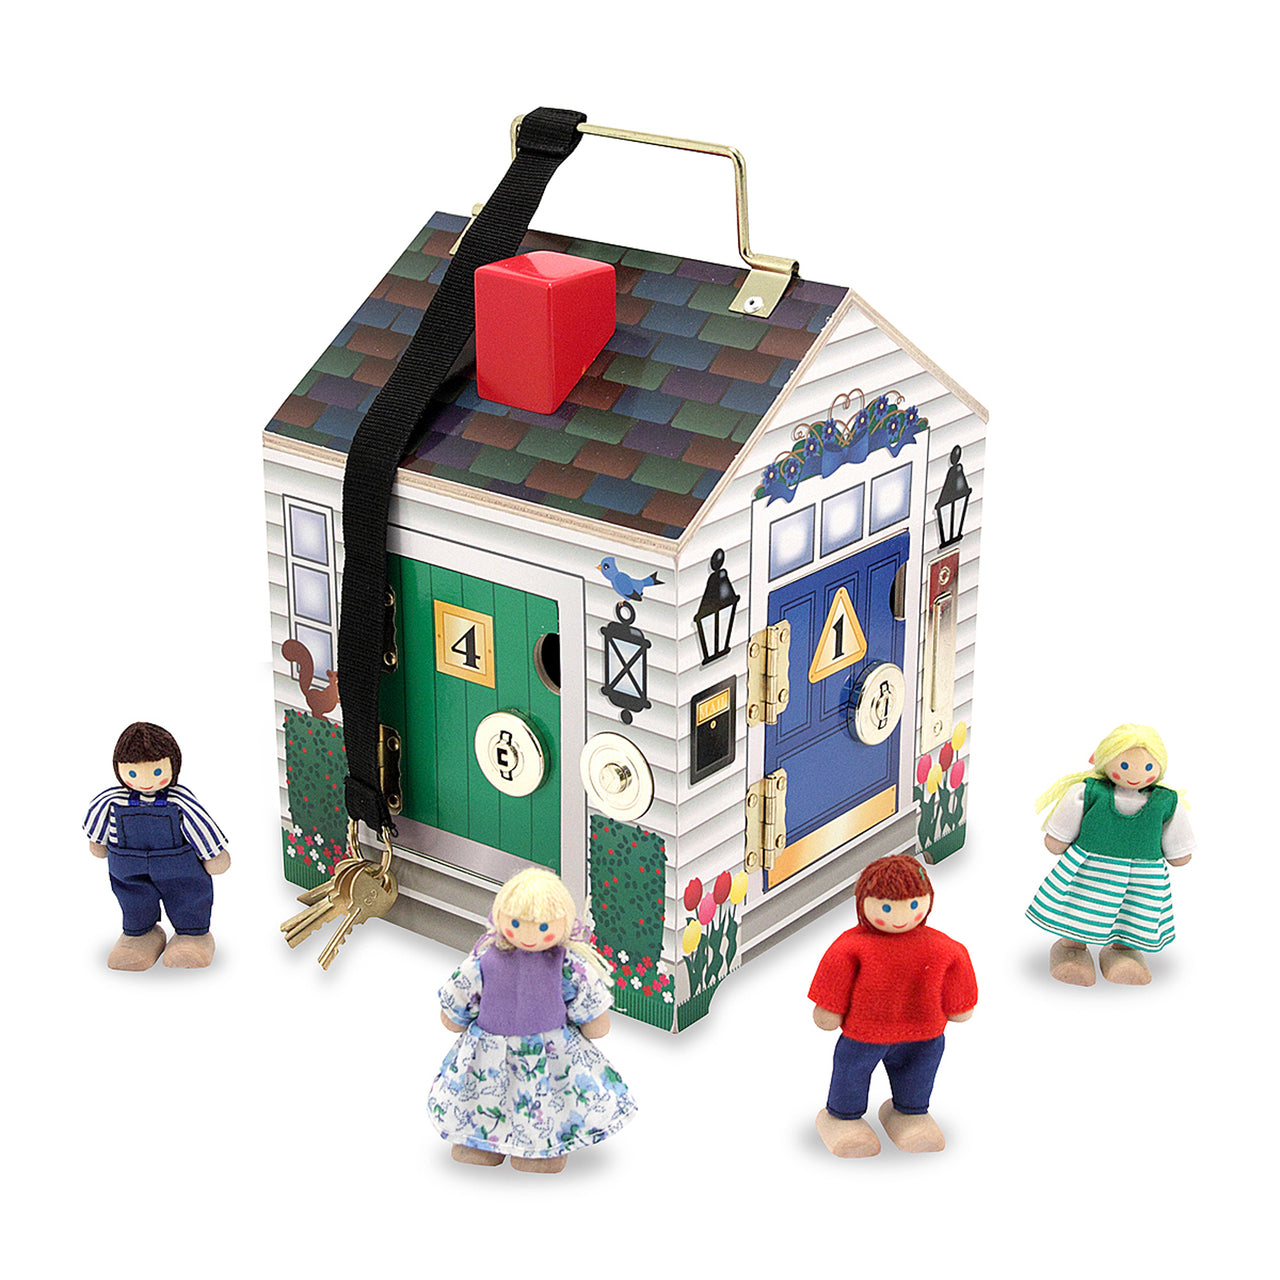 Ding Dong! Fun is waiting for your little ones at the door of this vibrant wooden doorbell house from Melissa and Doug! Includes four electronic doorbell sounds, four unique locks with matching keys, and four play people. The keys will never be lost as they are attached to the house and the handle makes it all set to go on the move!